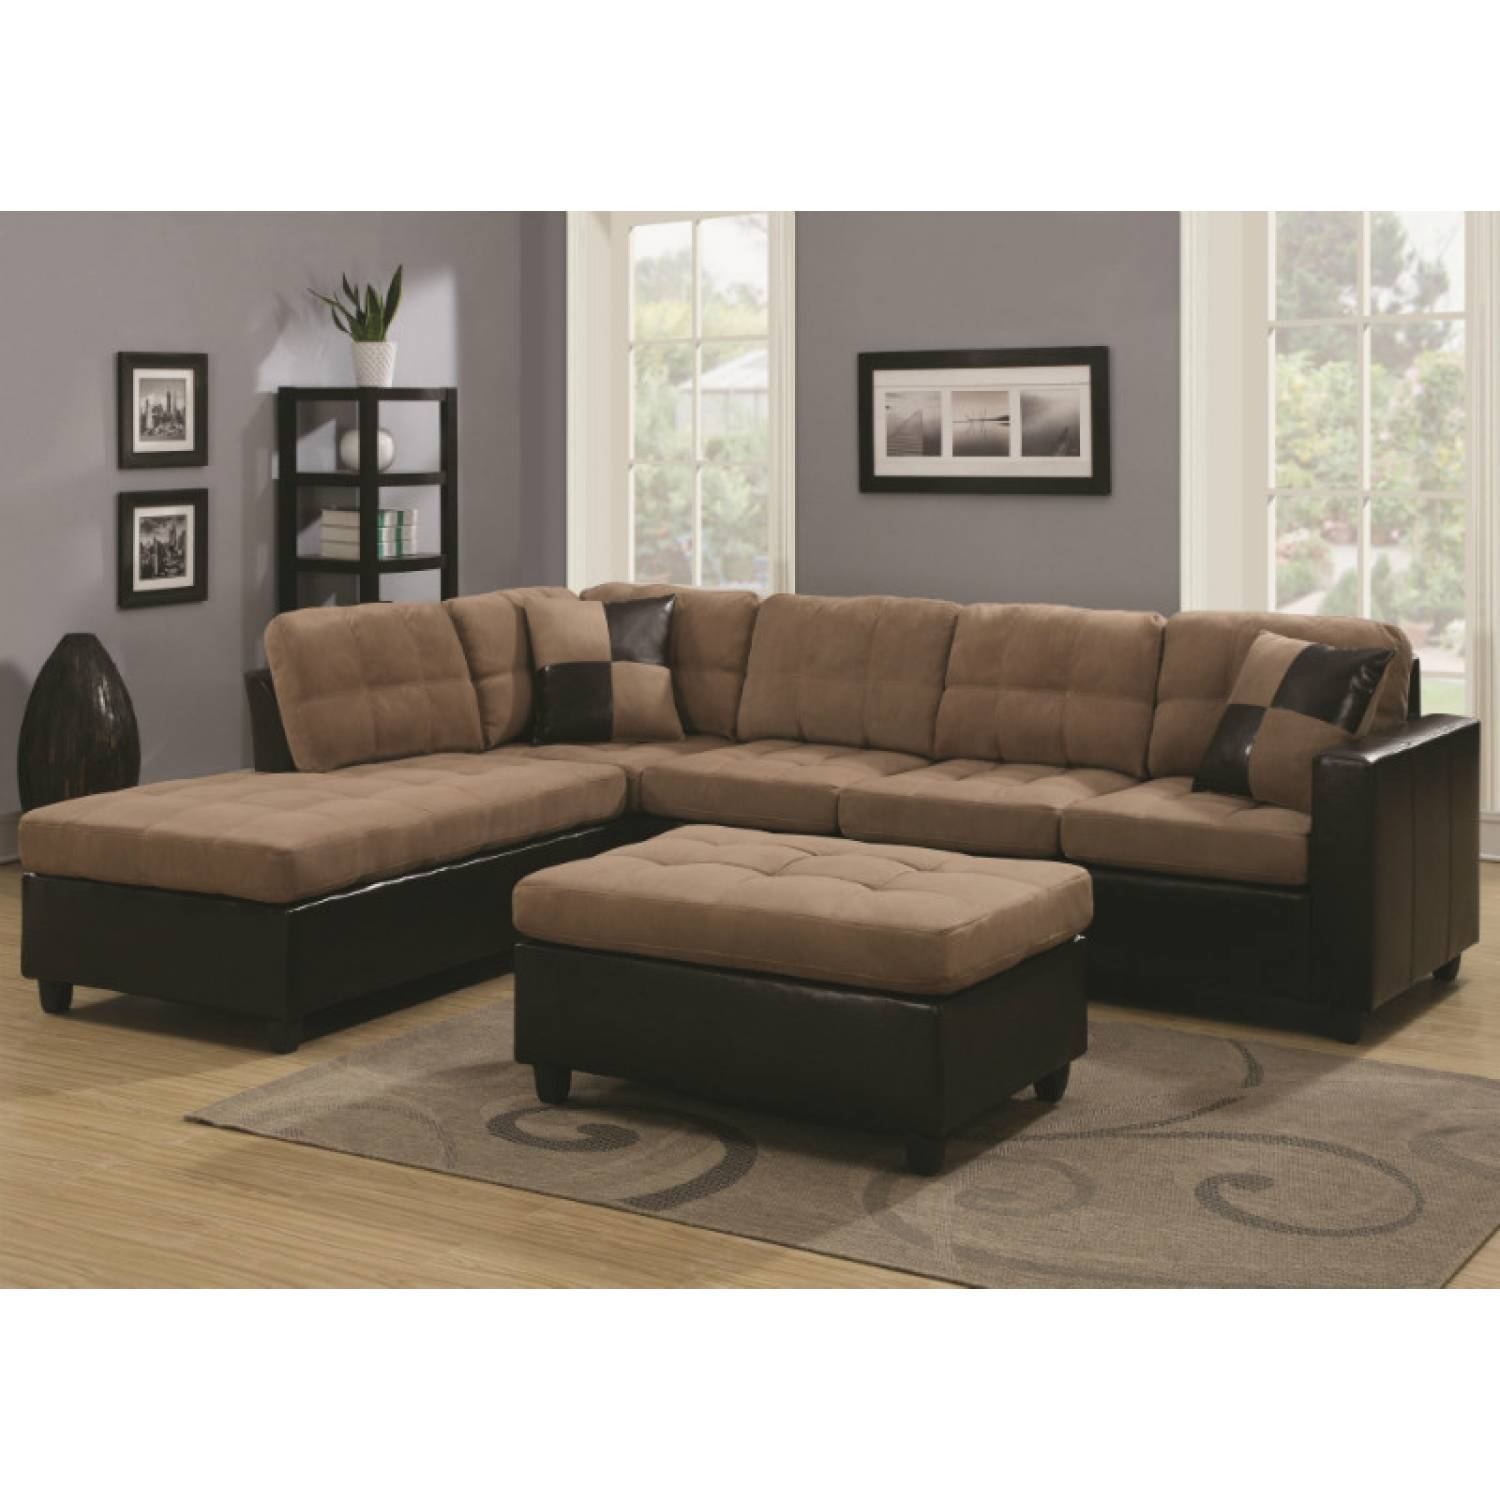 SECTIONAL SOFAS Discount Sale off 20% Furniture in San Francisco